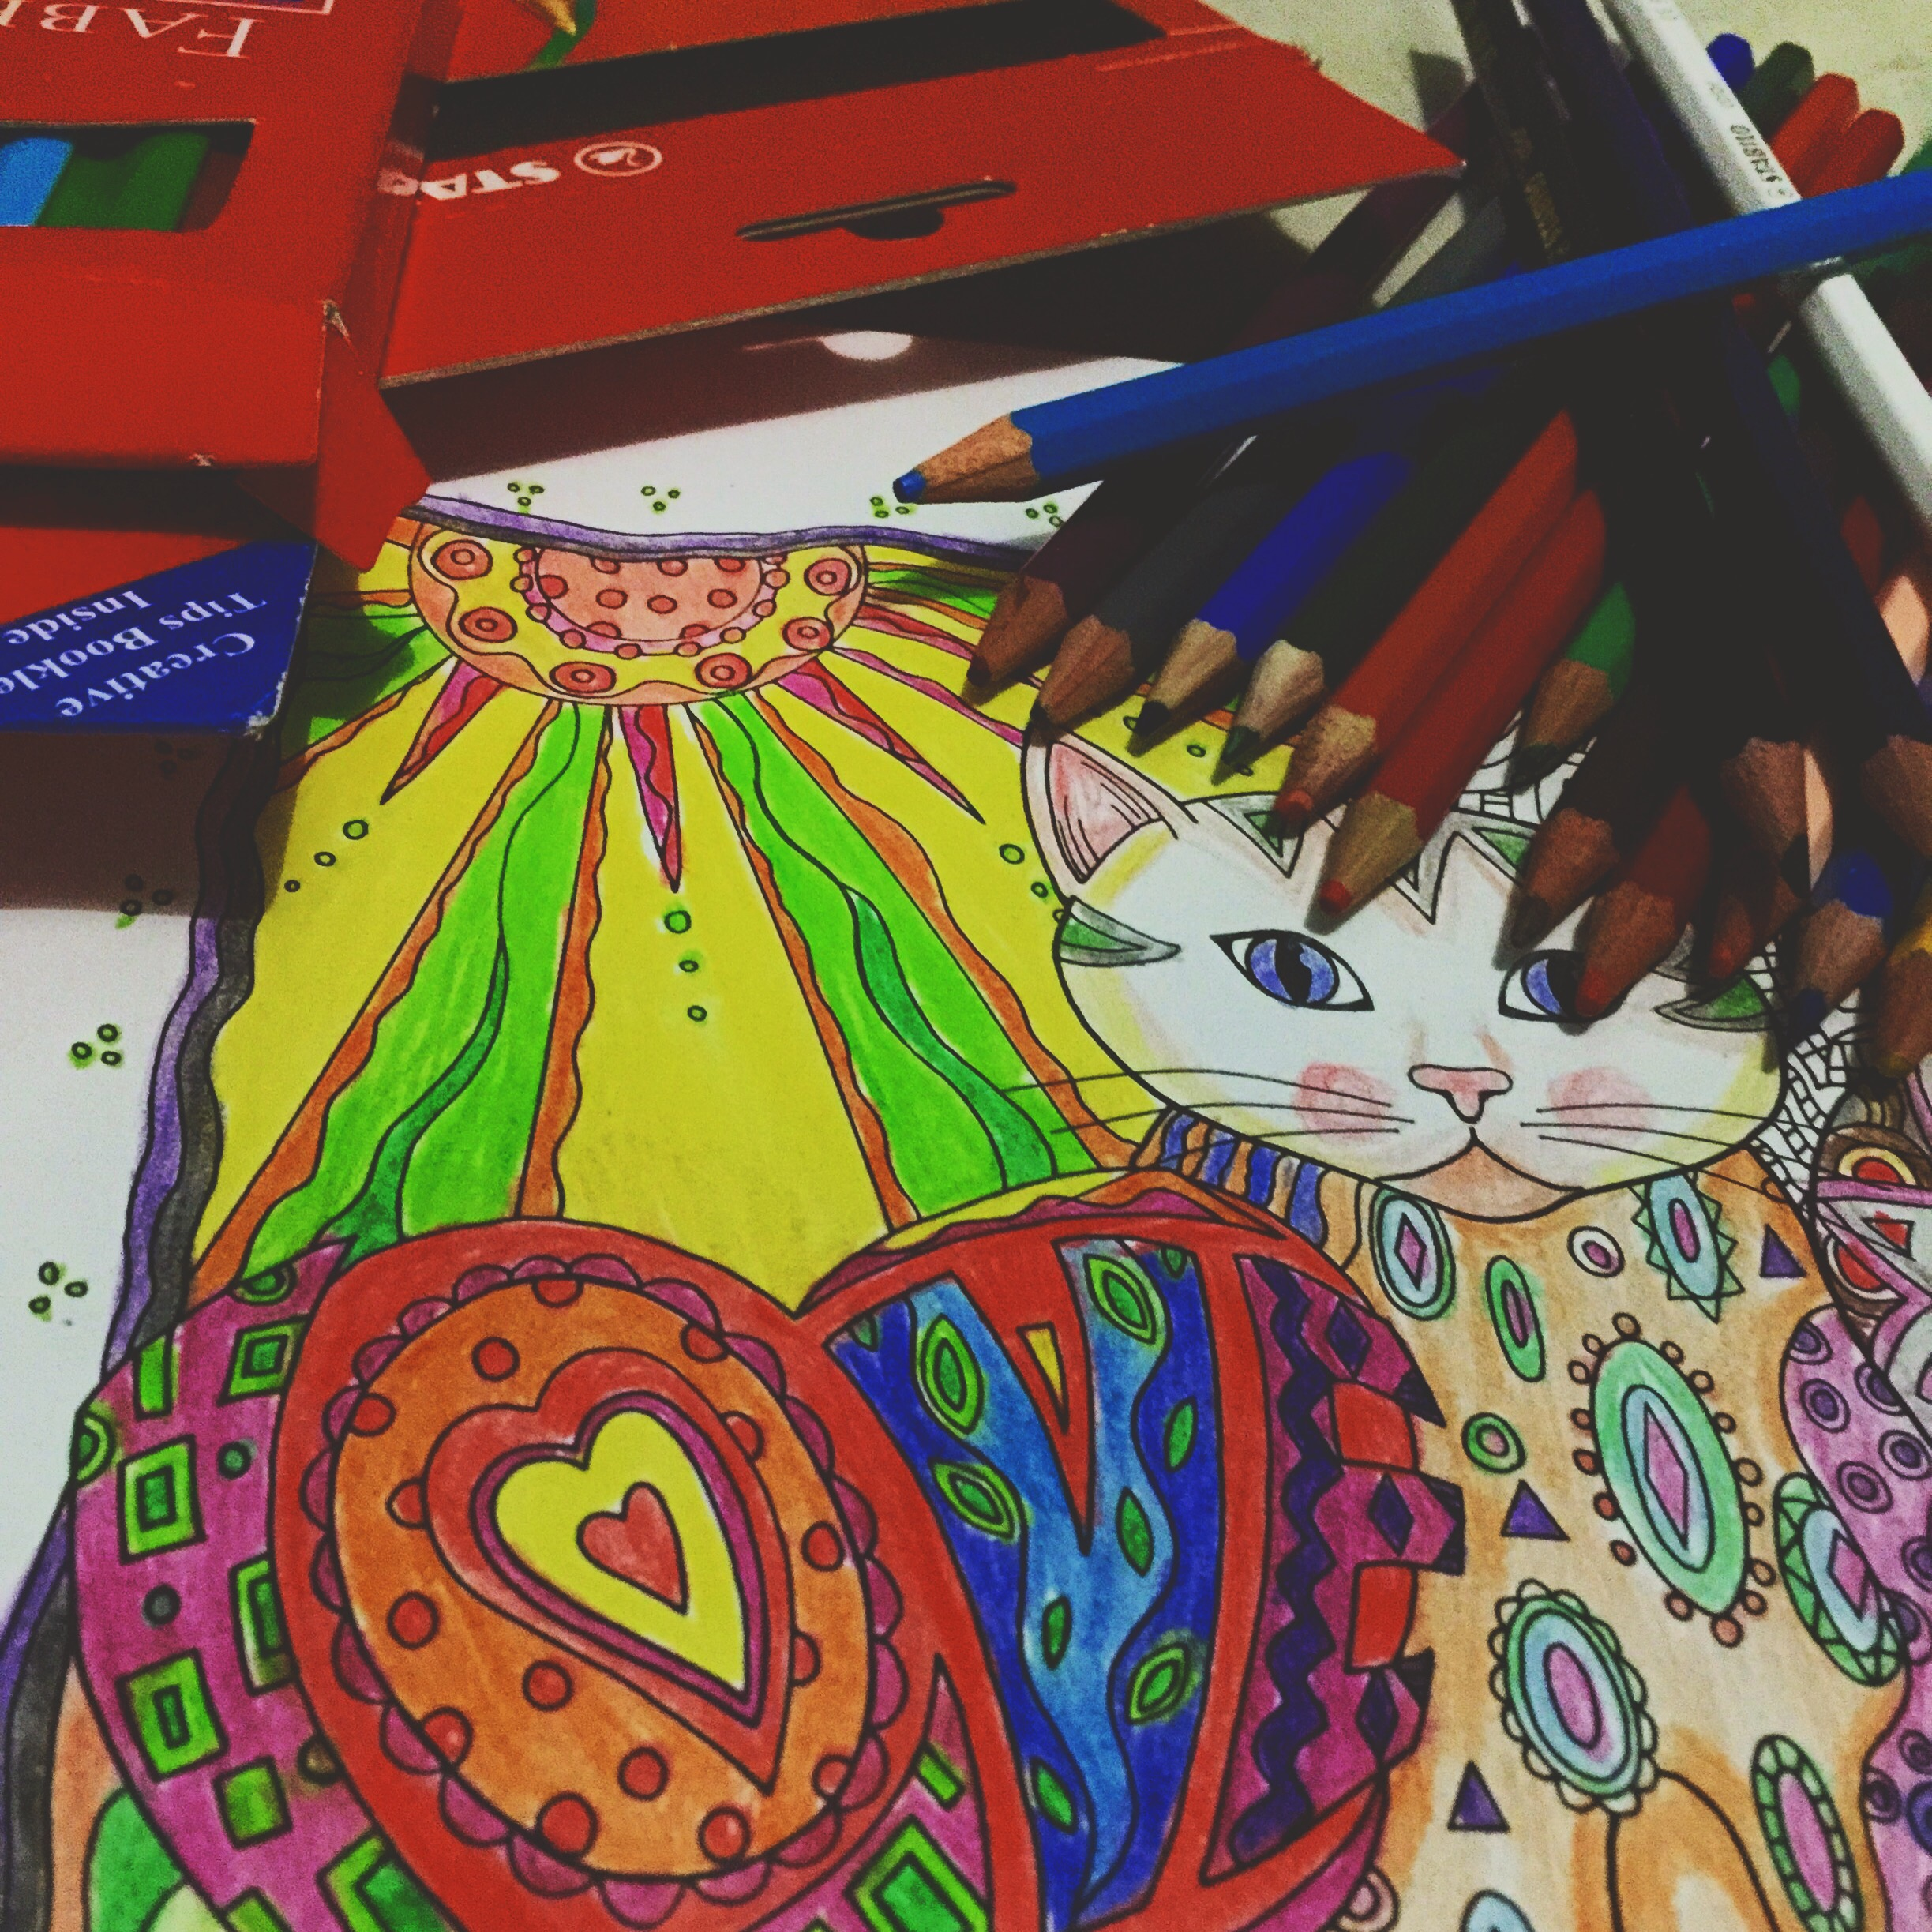 How to color grown up coloring books - Unlike Other Kids Who Probably Learned To Color Within The Lines And As Light As Possible I Tend To Grip The Color Pencil Furiously